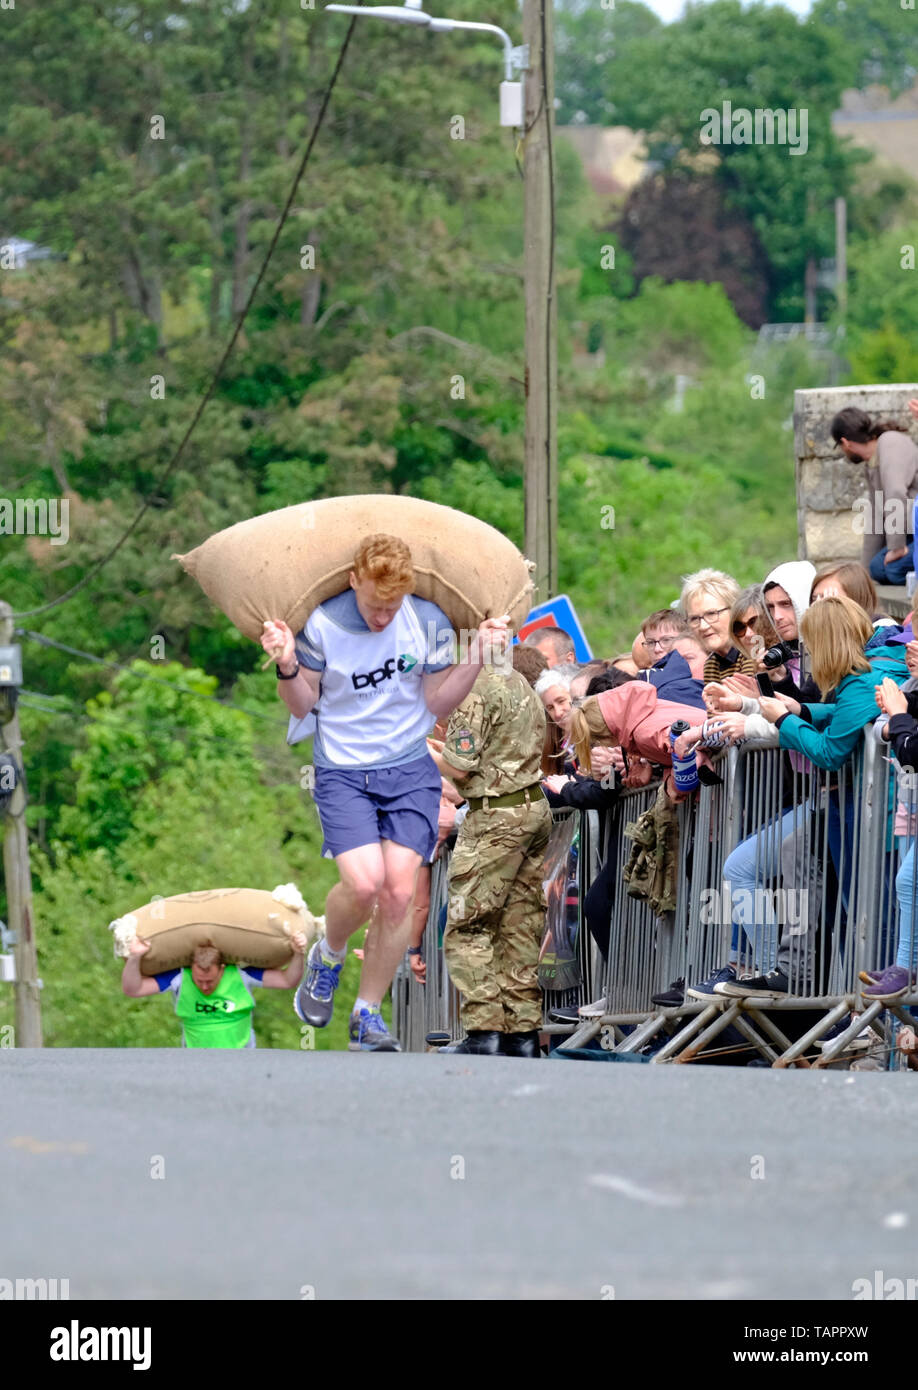 Tetbury, Gloucestershire, UK. 27th May, 2019. The annual races attract large crowds and raise money for local charities. Competitors race up steep Gumstool Hill in this pretty Cotswold town carrying a woolsack. The men carry a 60lb sack and the ladies a 30lb sack. Credit: Mr Standfast/Alamy Live News - Stock Image